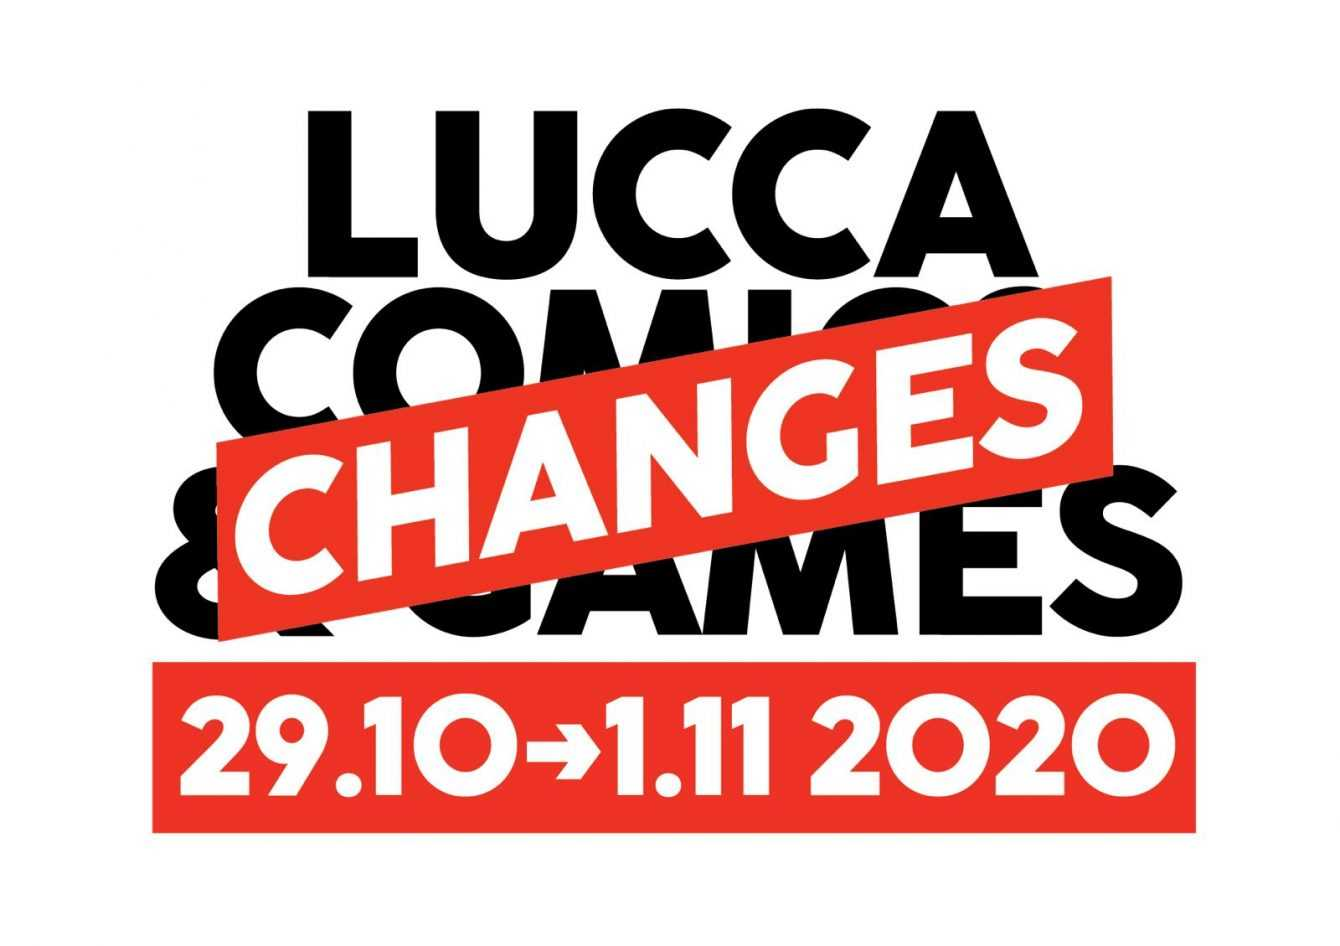 Lucca ChanGes 2020: il pop up store di DungeonDice.it